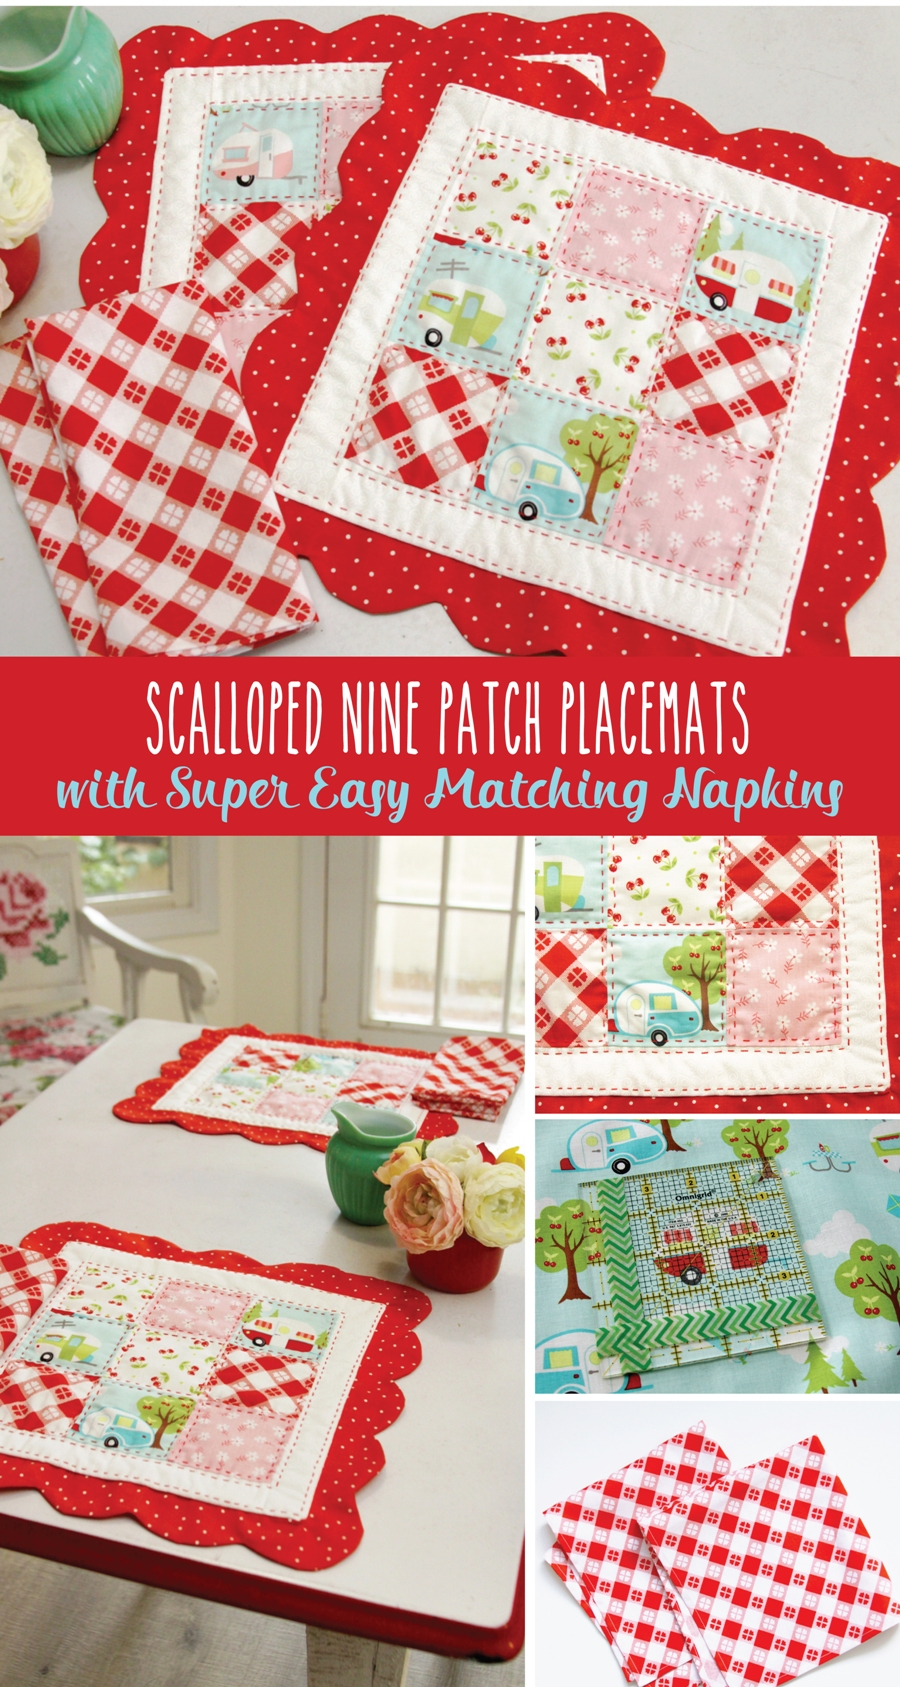 Free Pattern and Tutorial for Scalloped Nine Patch Placemats and cute matching napkins!